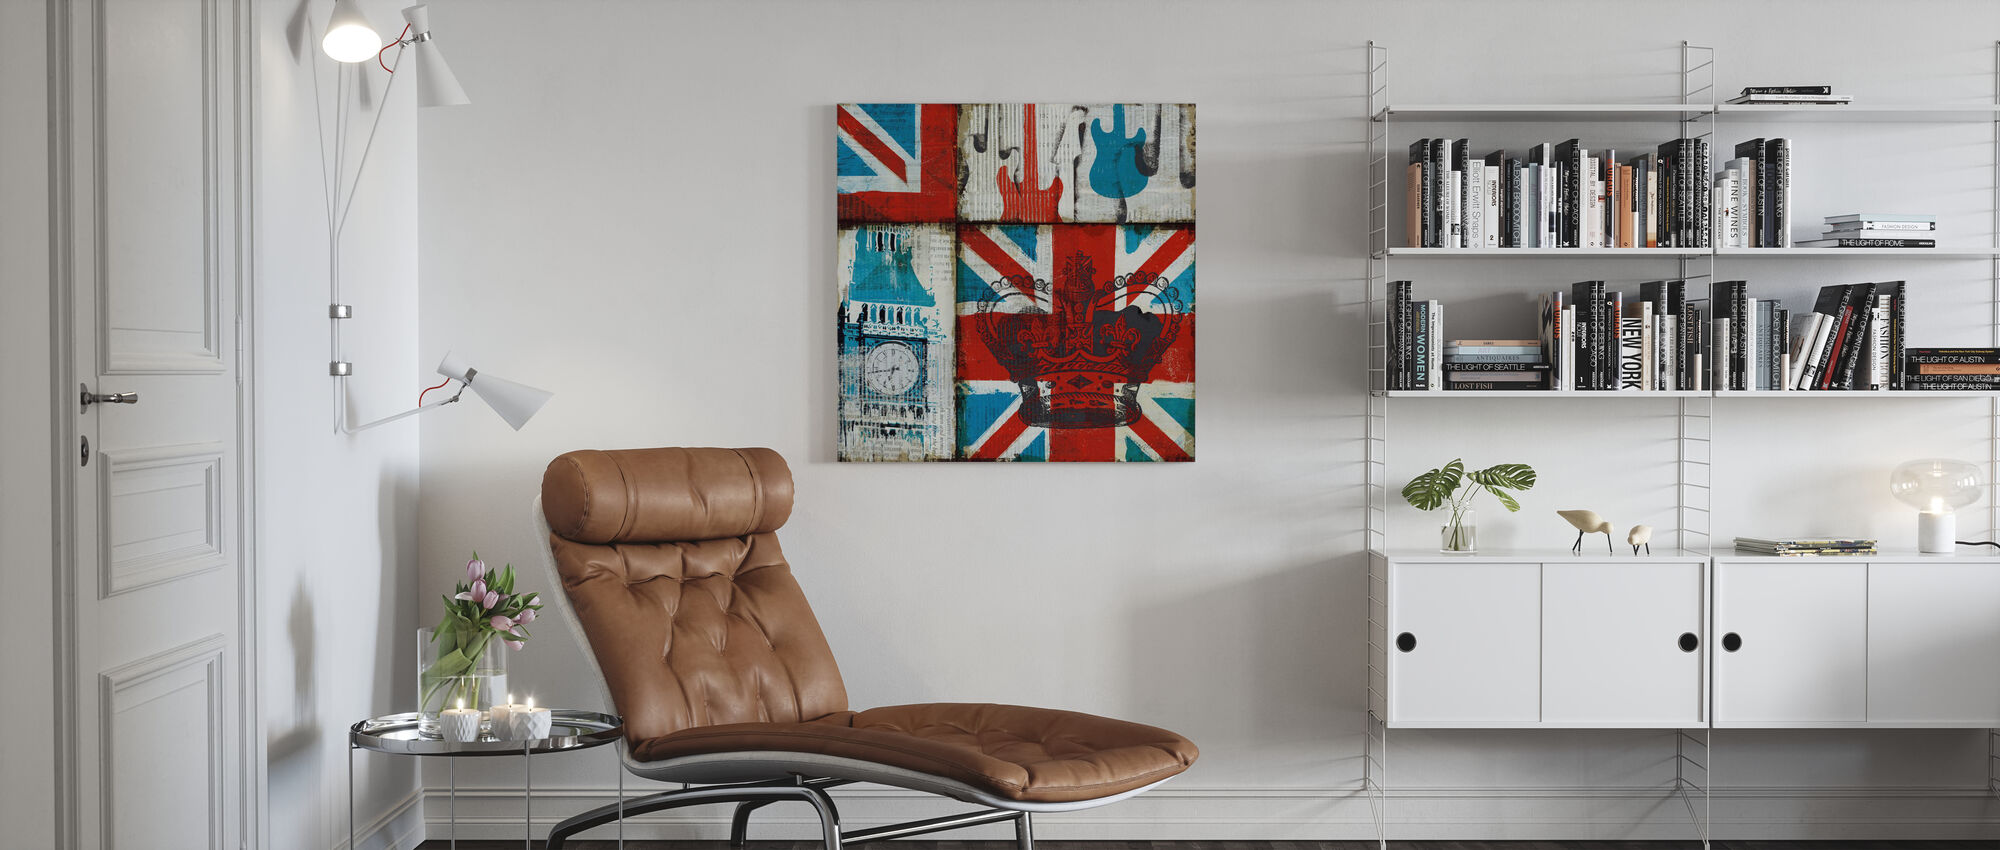 British Rock I - Canvas print - Living Room